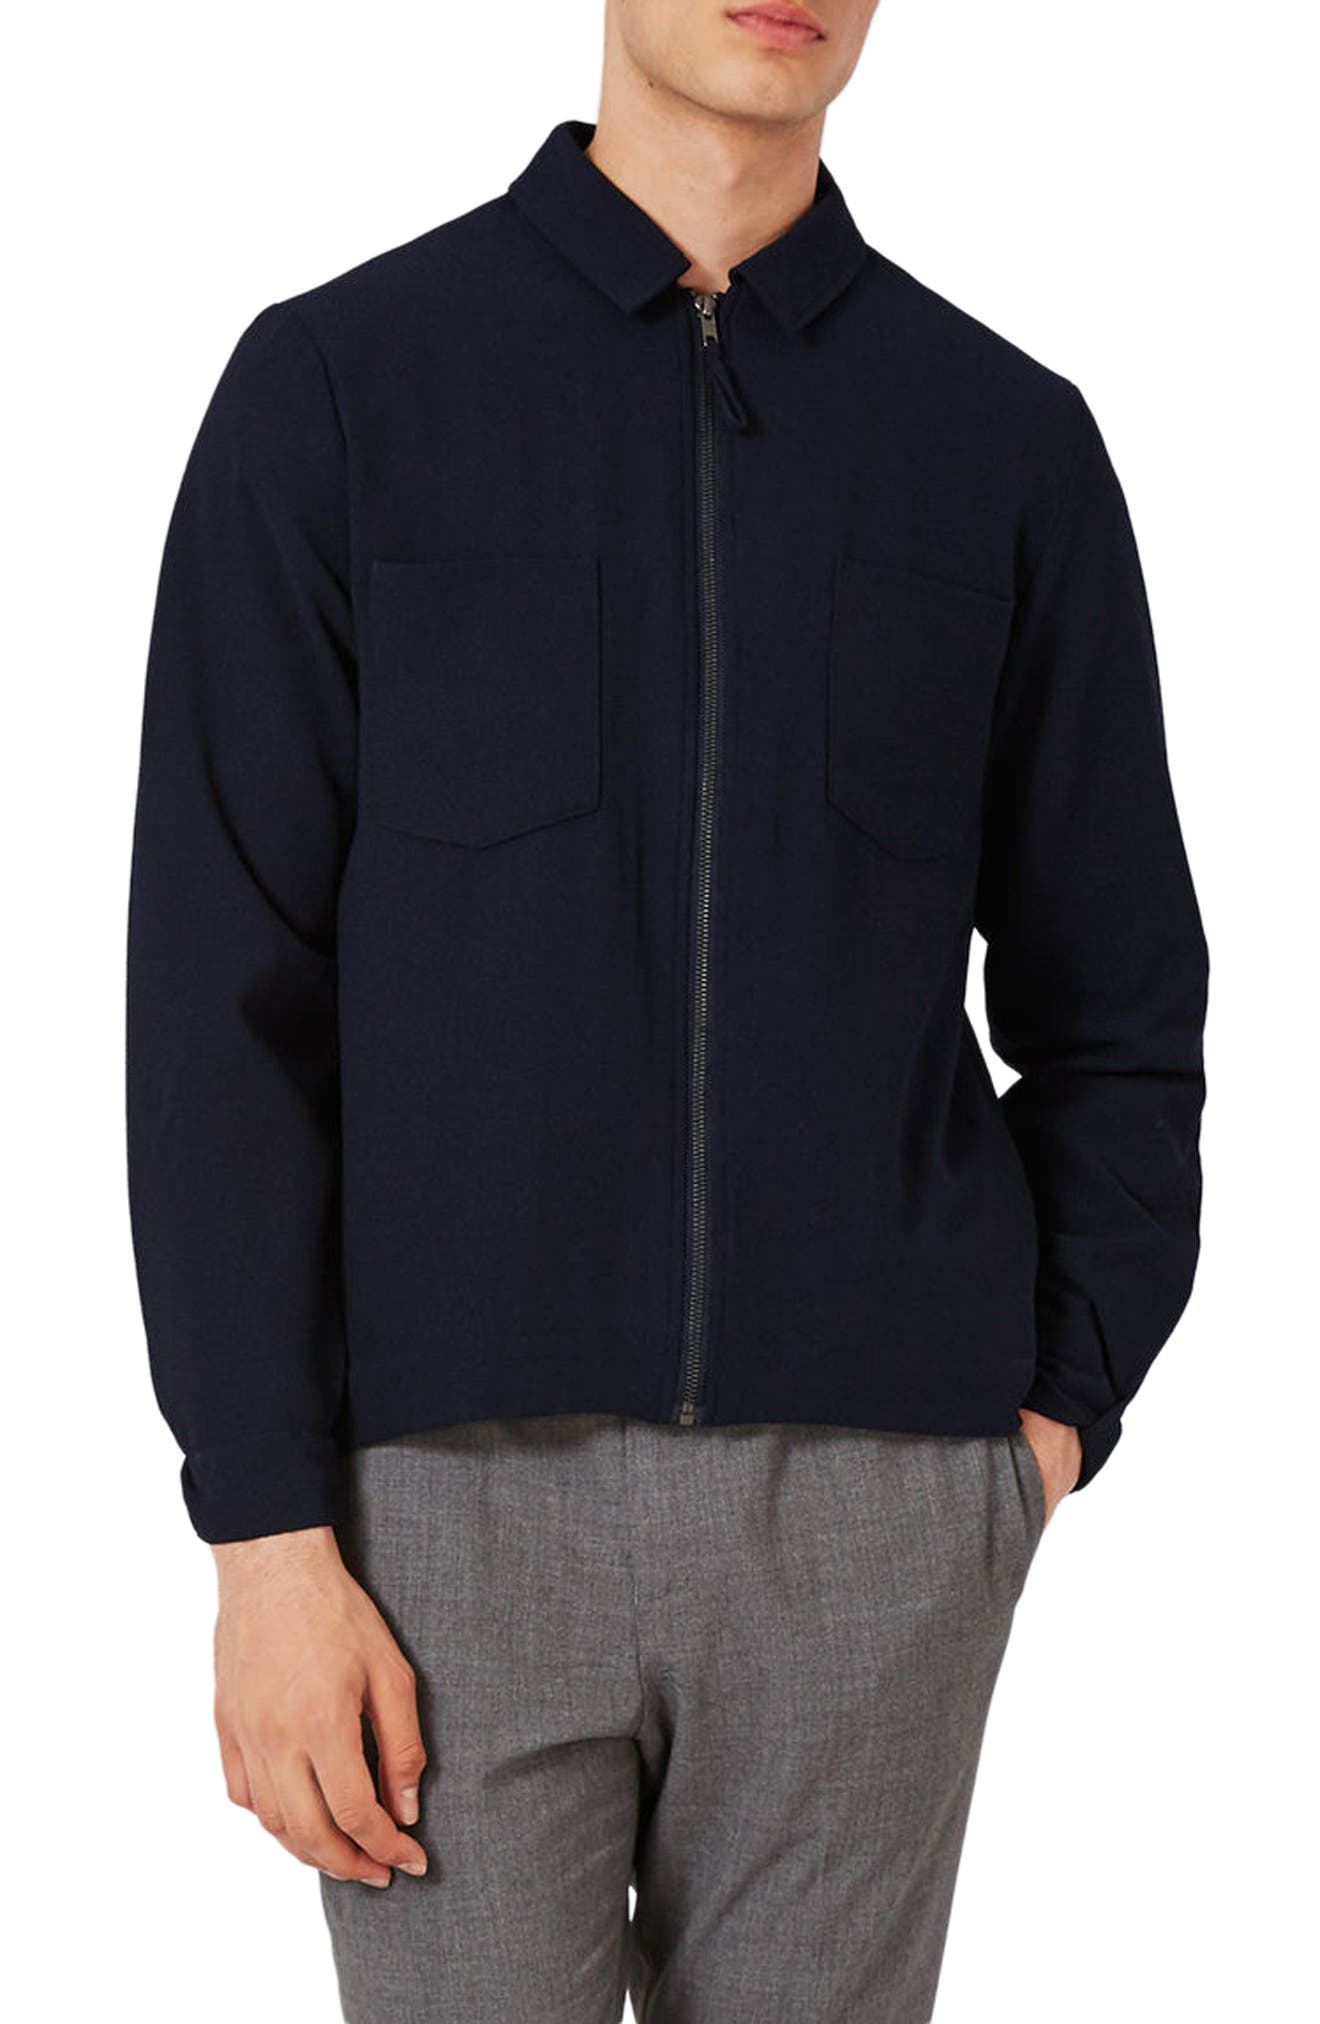 Lightweight Smart Jacket,                         Main,                         color, Navy Blue